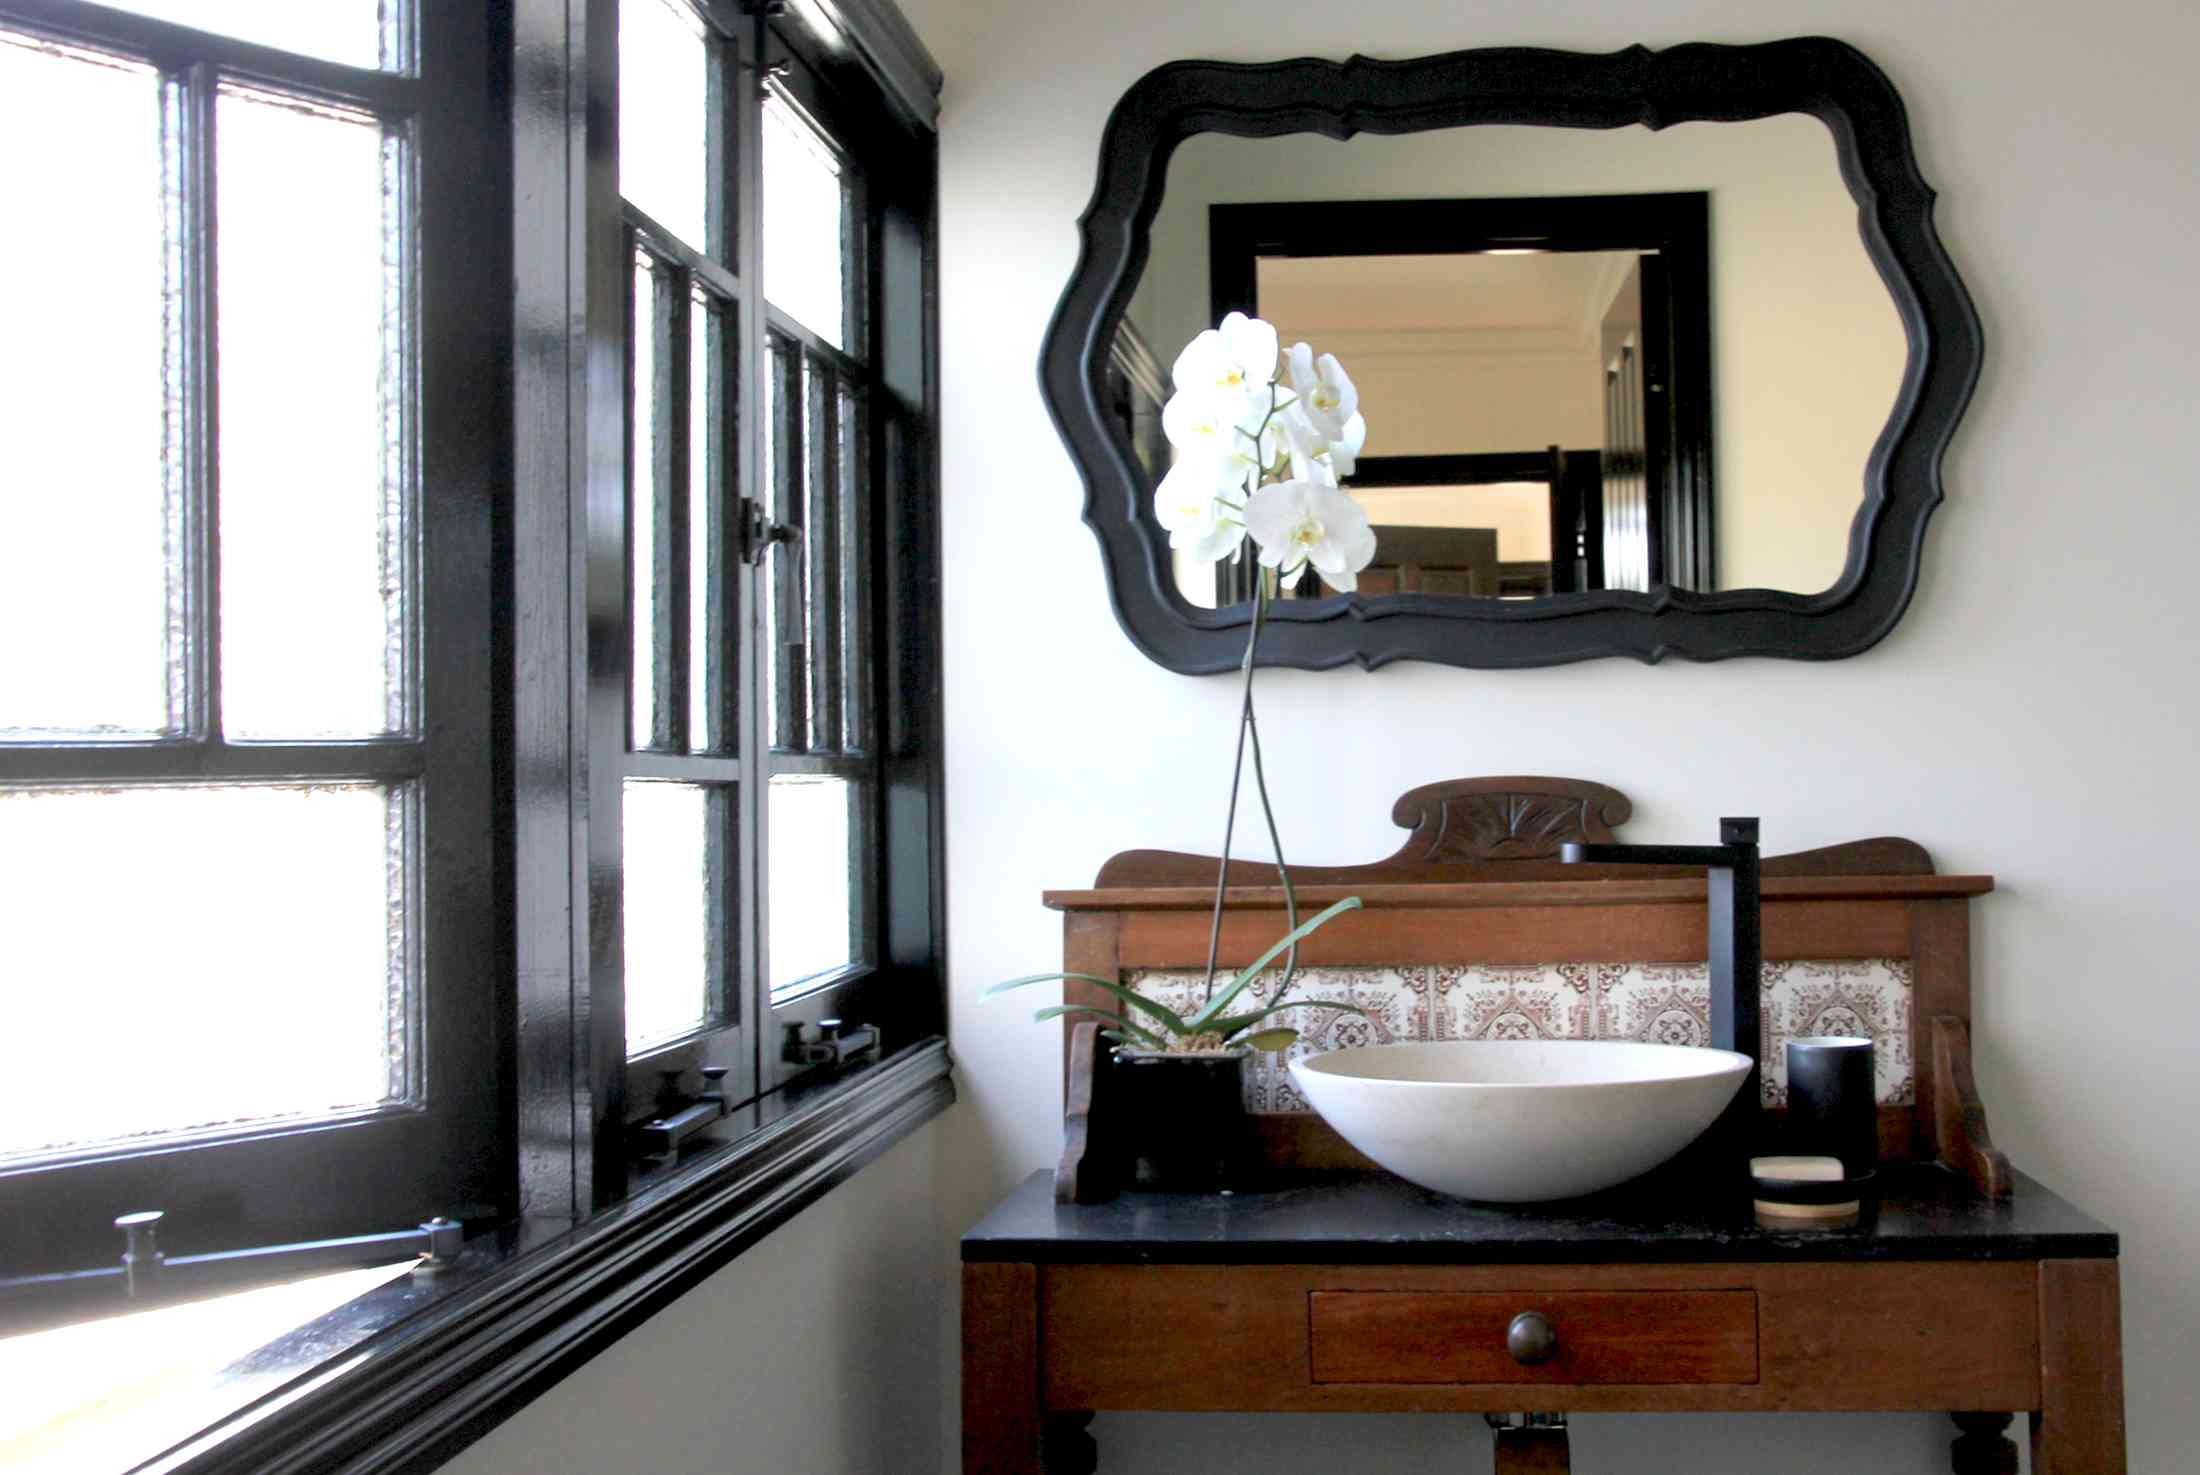 Up-cycled client's side table into bathroom vanity